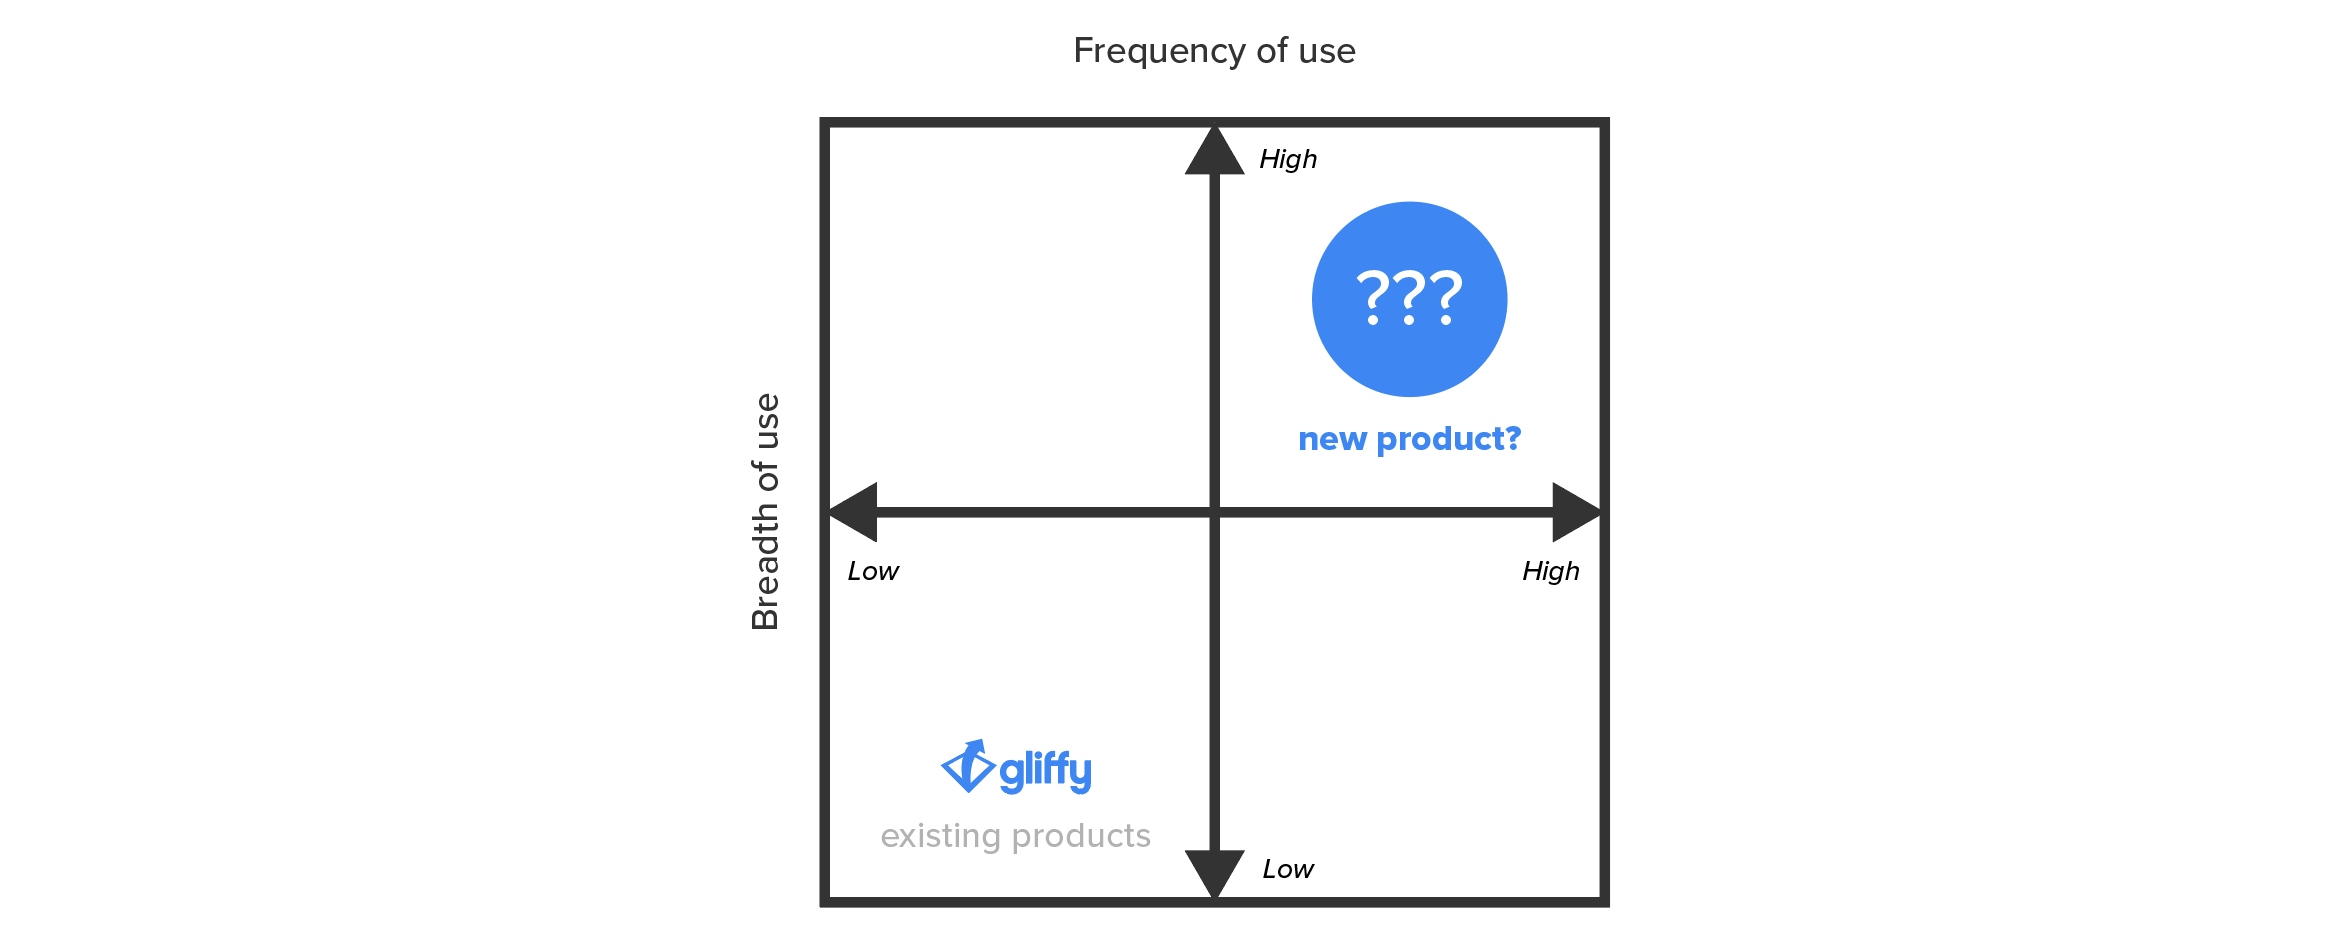 How might we expand our product line-up, add value to existing customers, and increase product usage with a new Gliffy product?